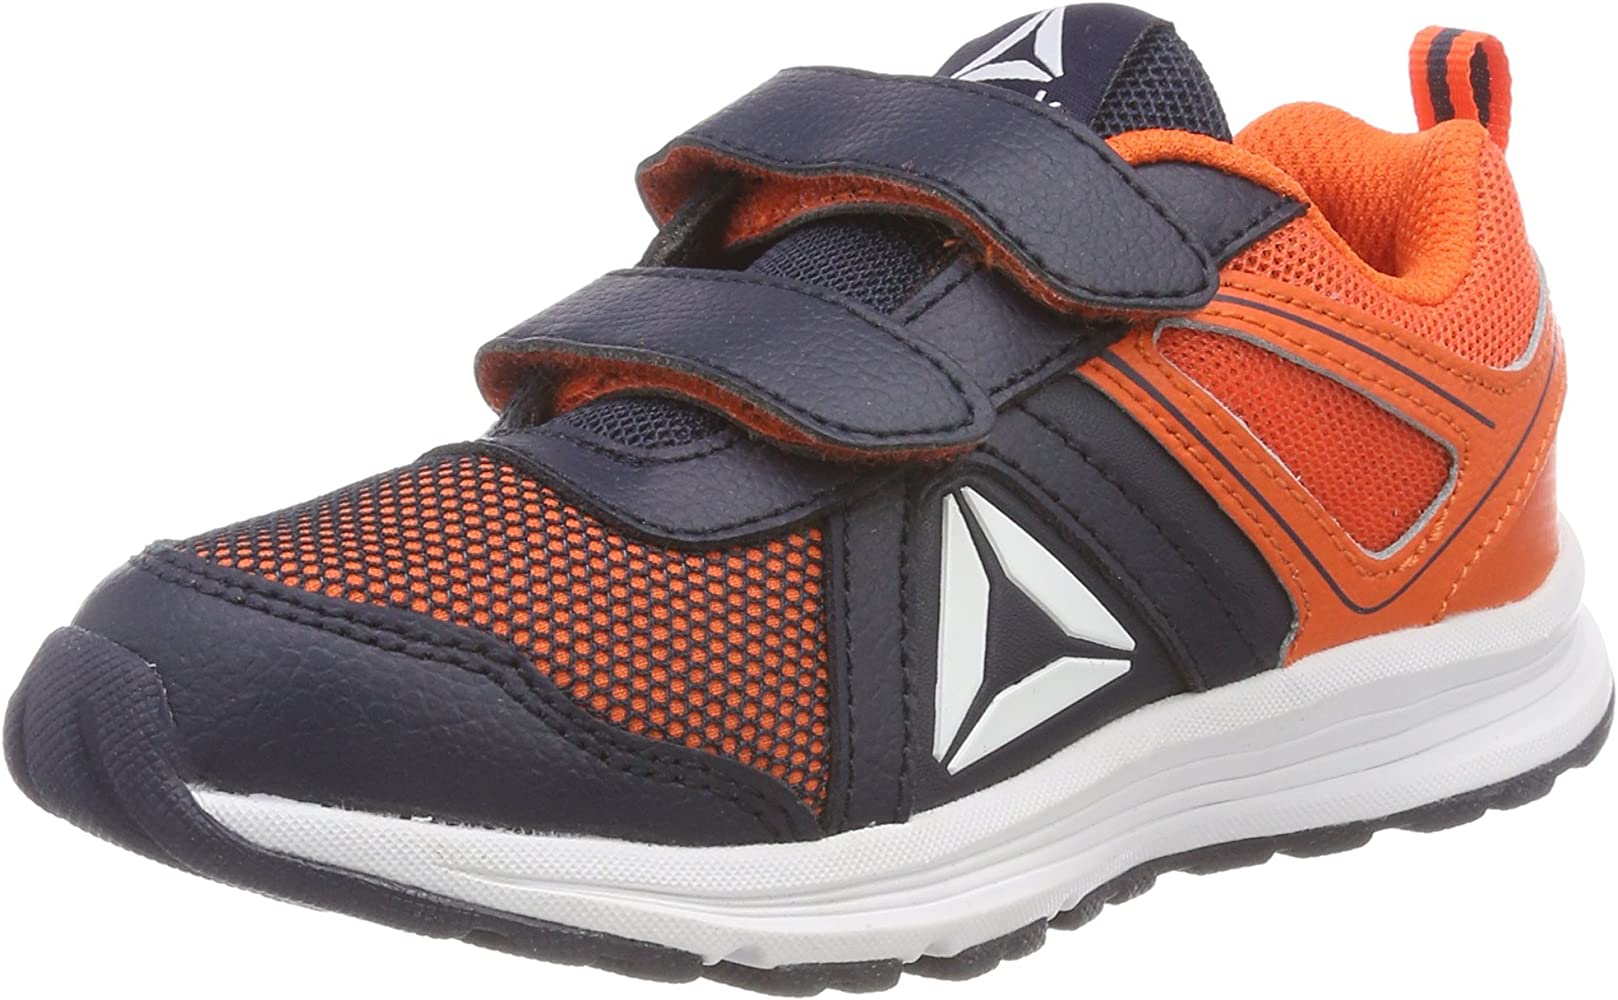 Reebok Almotio 3.0 2V, Zapatillas de Trail Running para Niños, Azul (Collegiate Navy/Bright Lava 000), 29 EU: Amazon.es: Zapatos y complementos